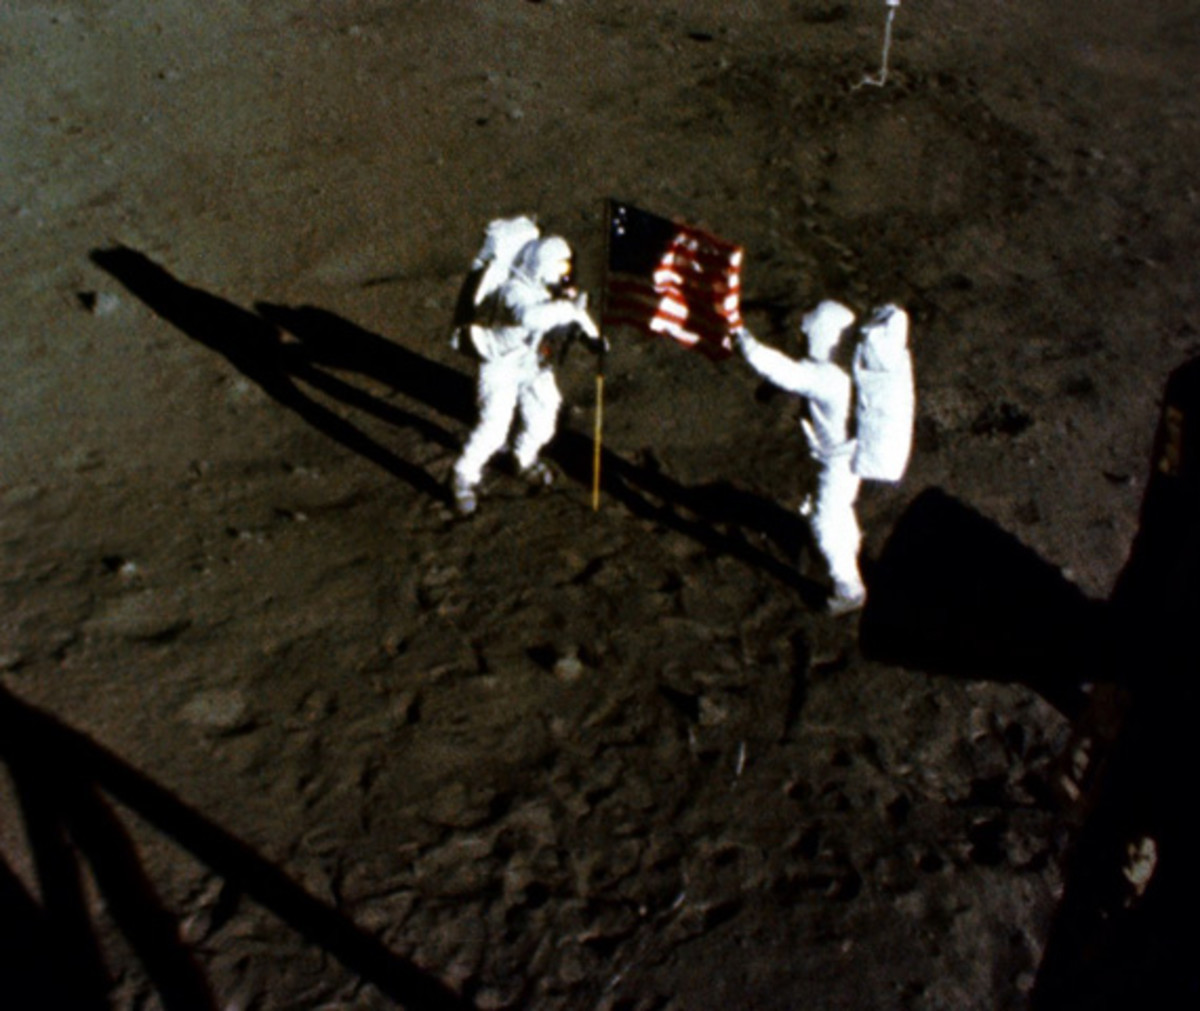 neil-armstrong-first-man-on-the-moon-apollo-11-07